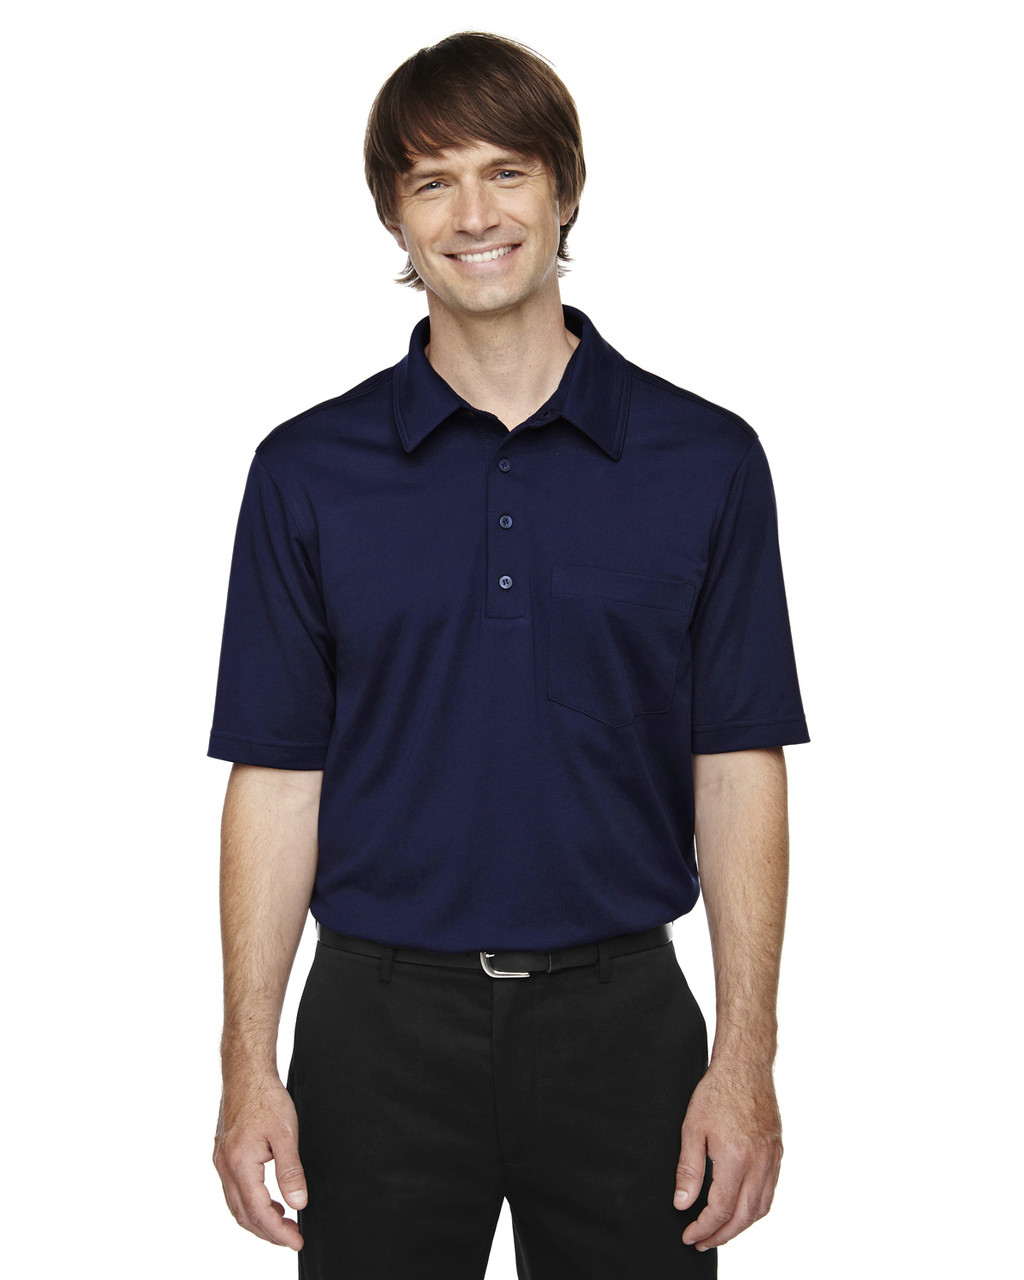 Classic Navy - 85114T Ash City - Extreme Eperformance Men's Tall Protection Plus Polo Shirt